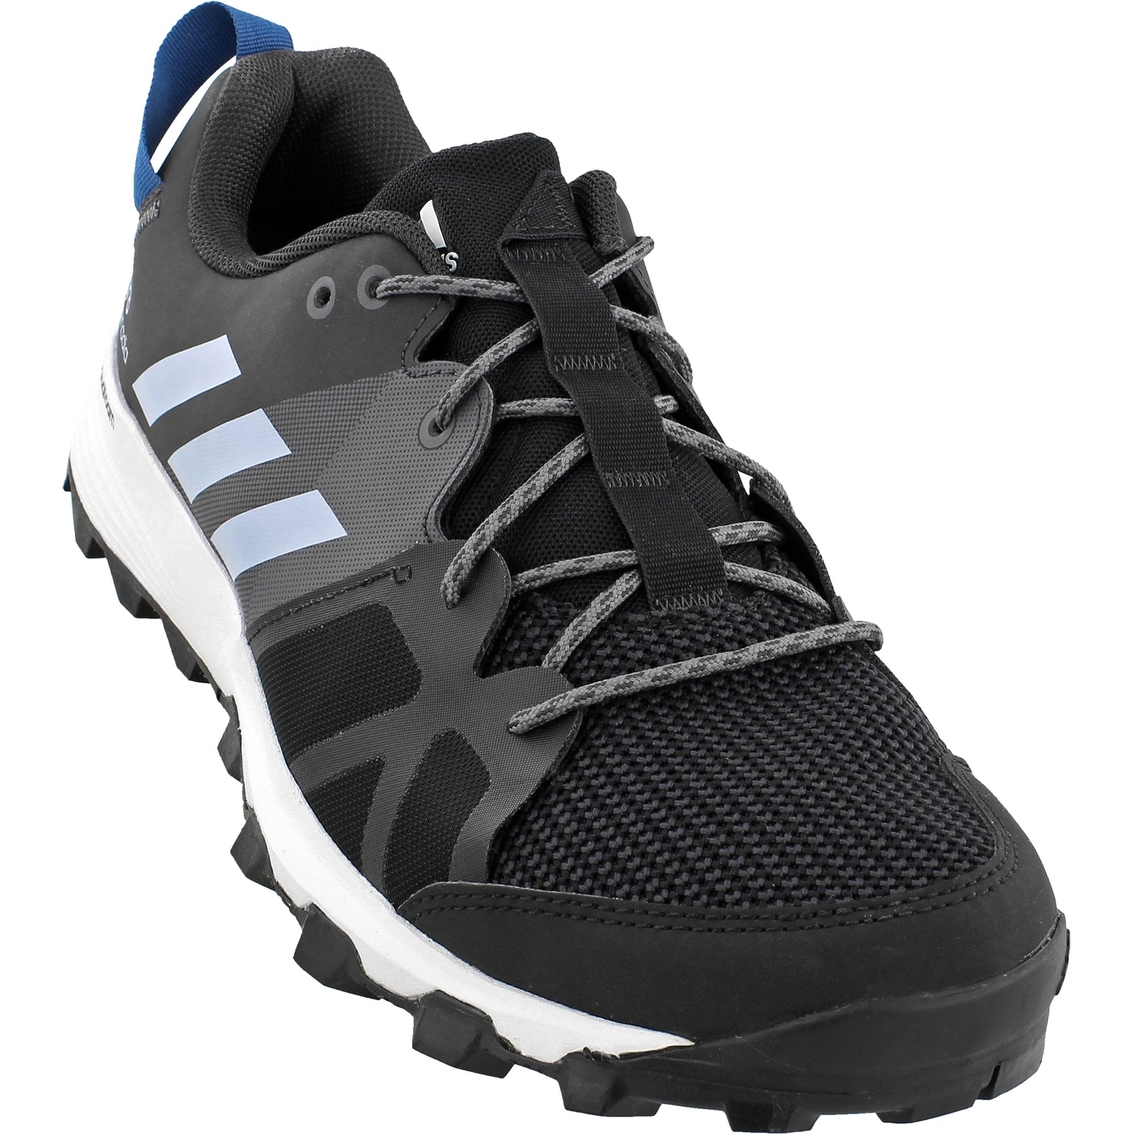 94323d129d9c68 Adidas Outdoor Climacool Voyager Hiking Shoes